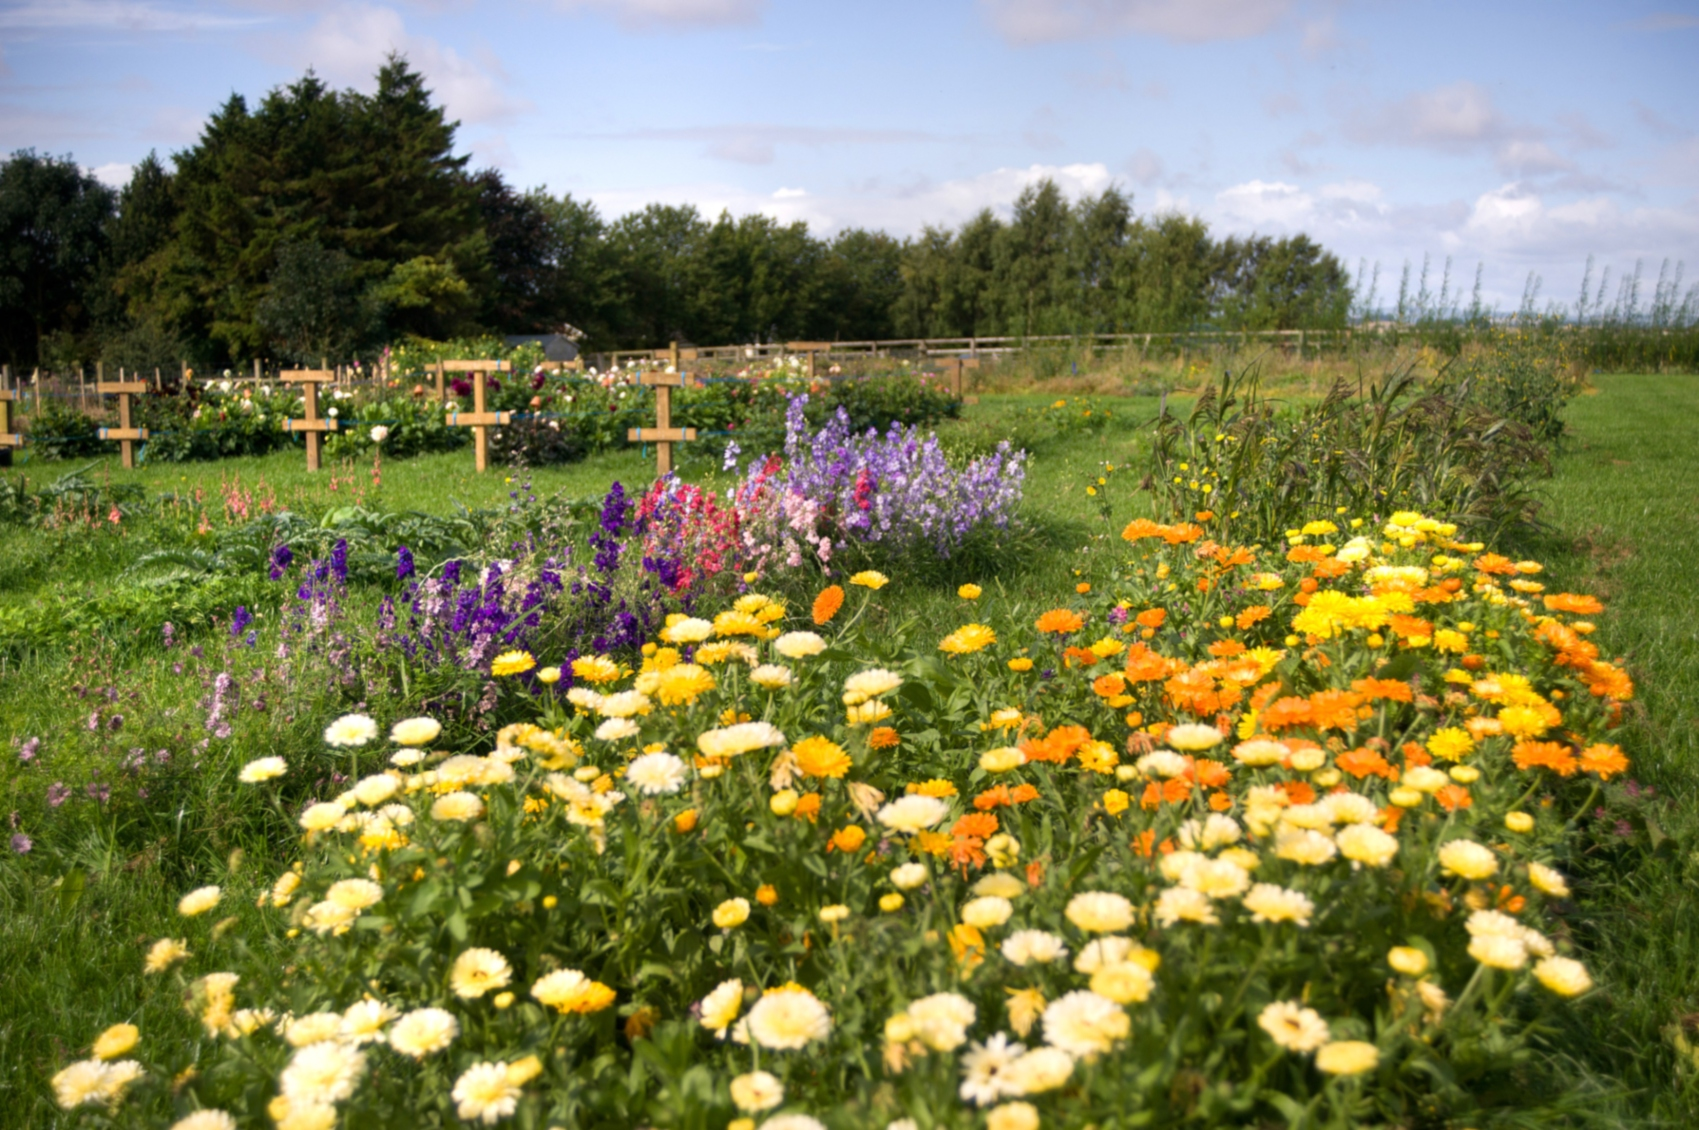 The flower fields in the English countryside at Ginger House Garden in Northumberland, England.